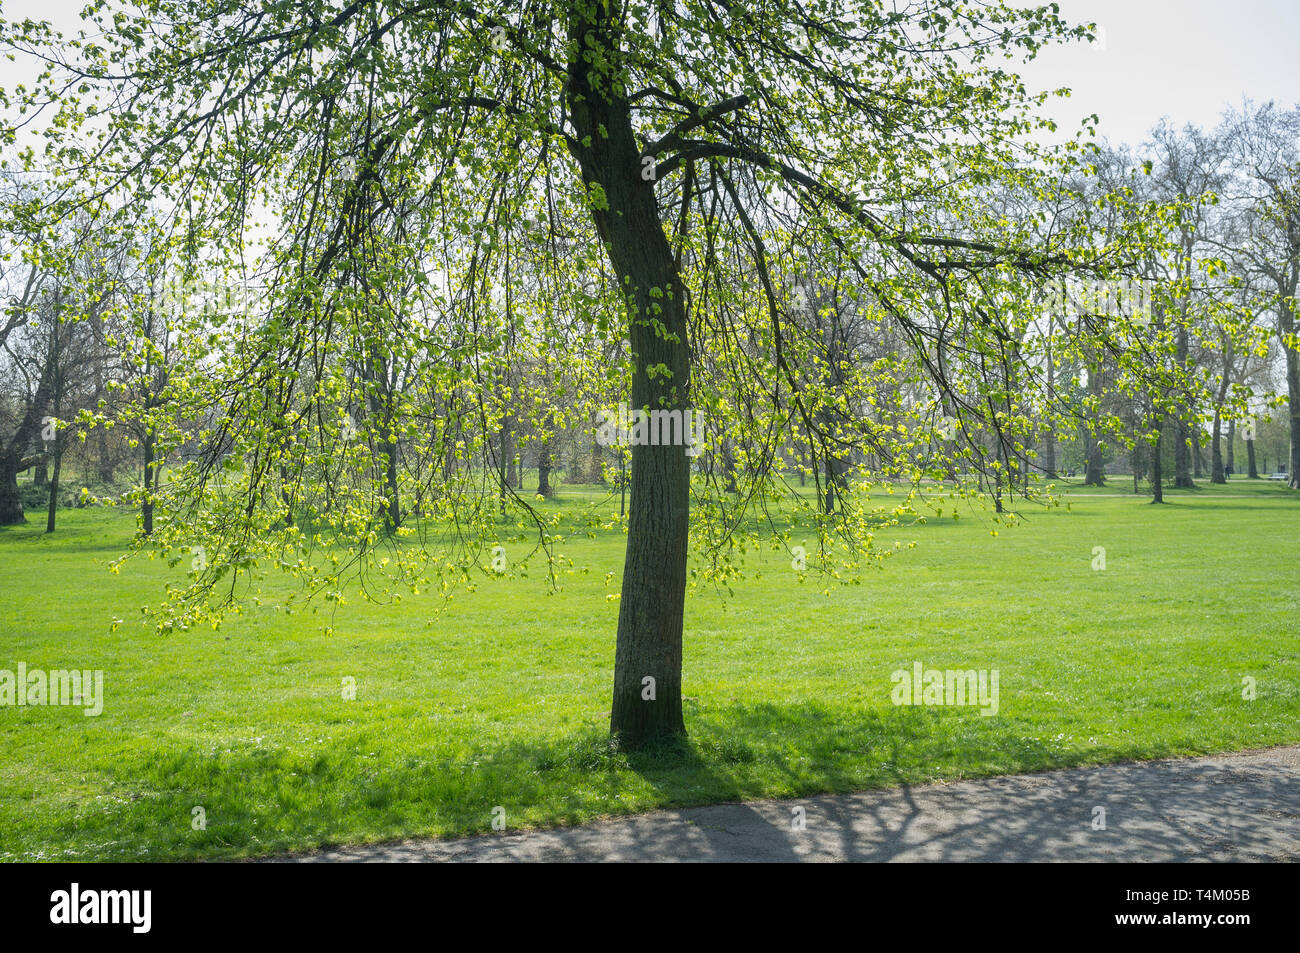 Fresh green foliage on a tree in Hyde Park, London in Spring - Stock Image